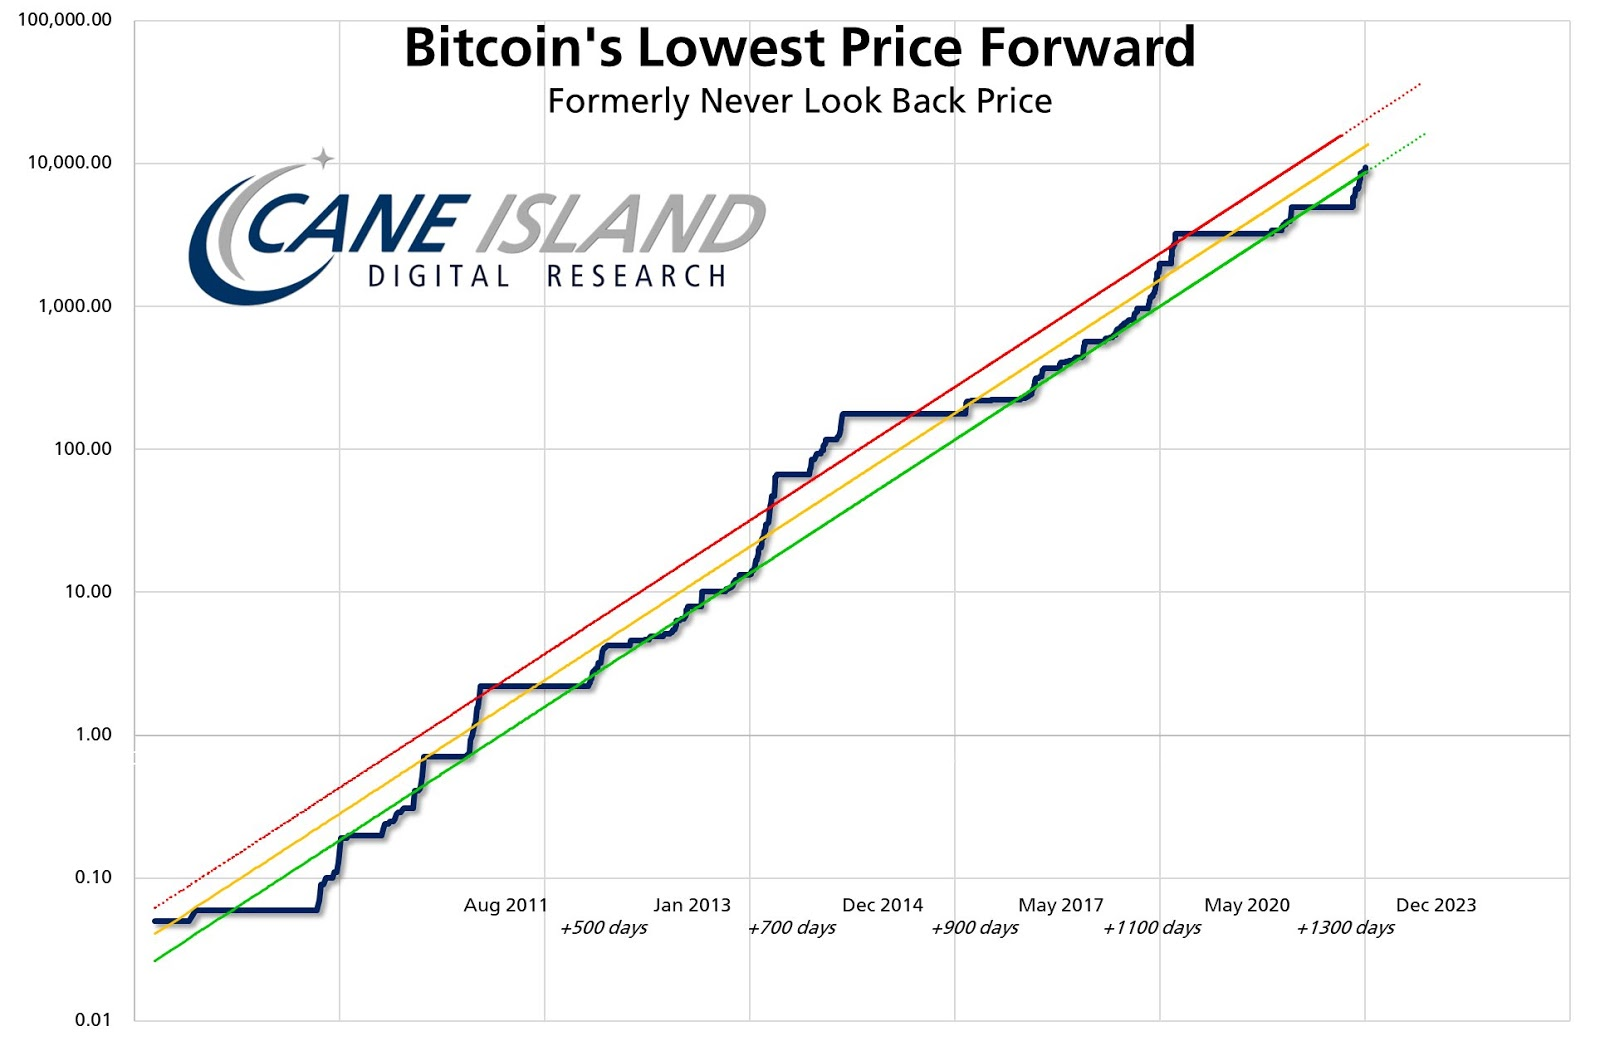 BTC/USD lowest price forward chart